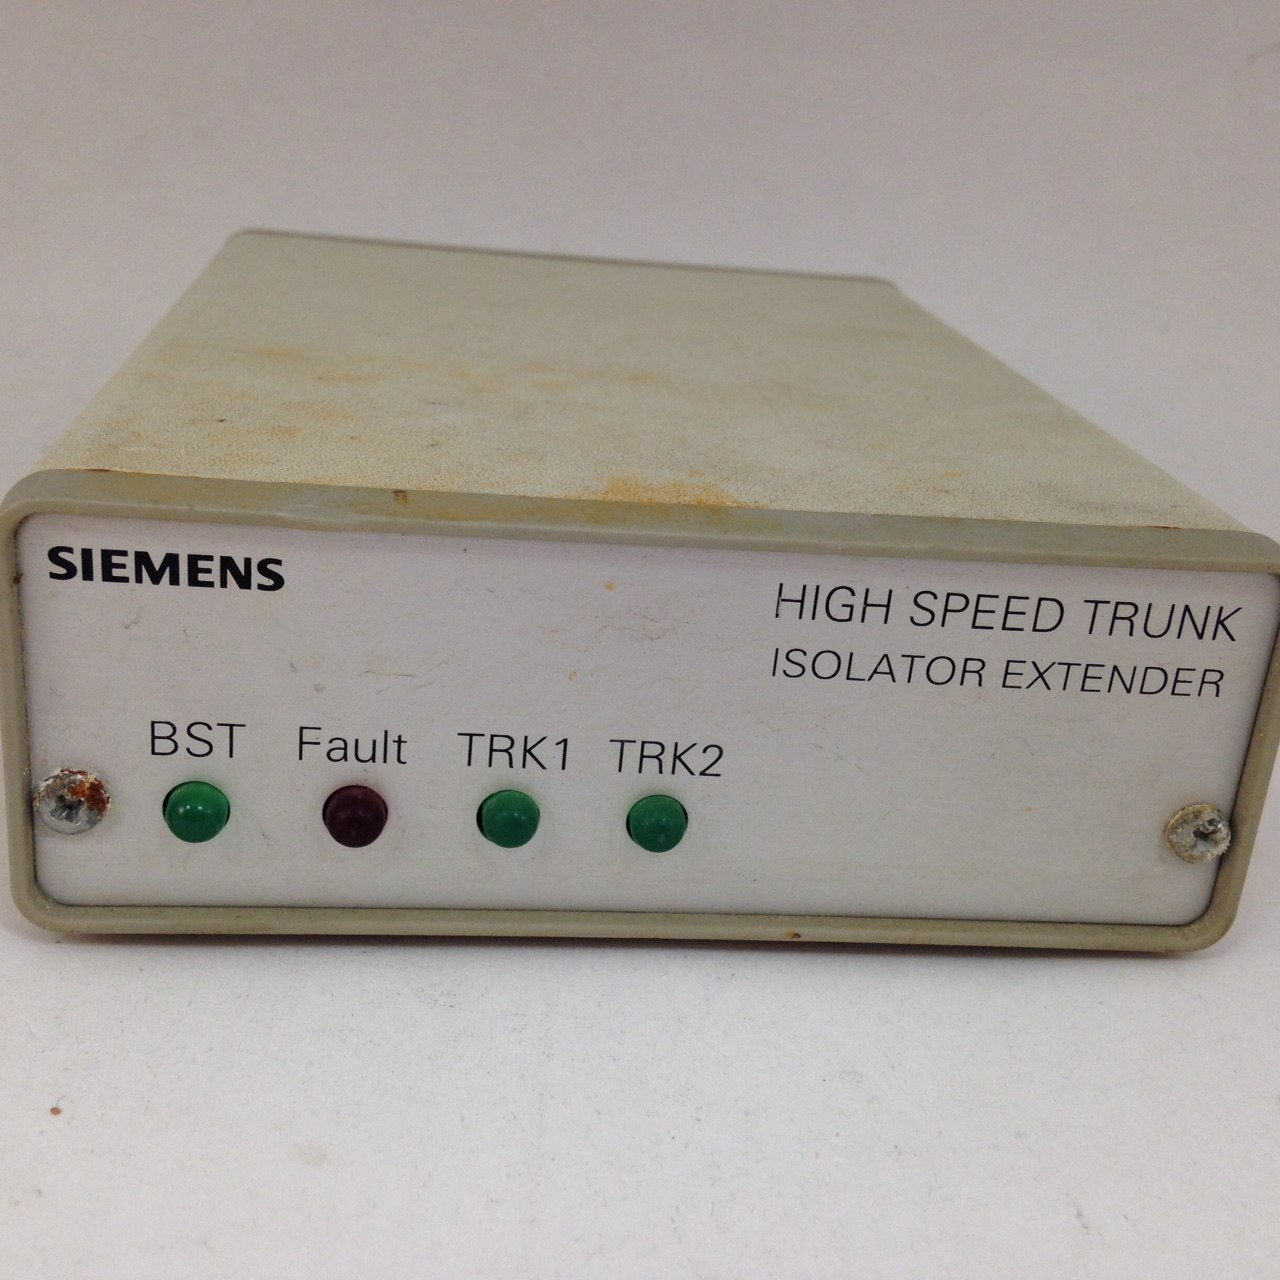 Siemens Apogee 538-965 Trunk Isolater Extender- New